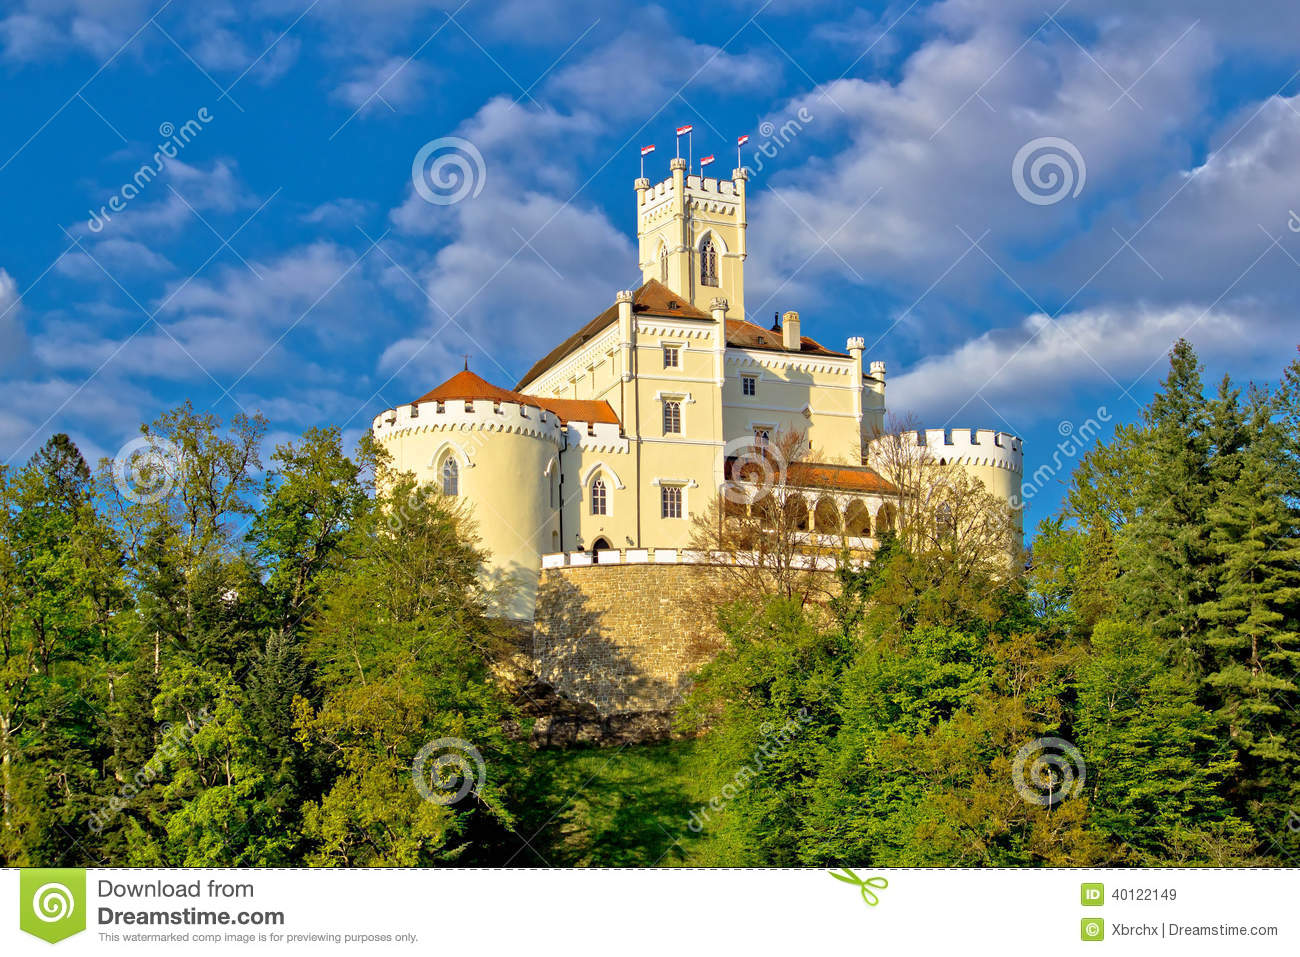 Colorful castle on green hill